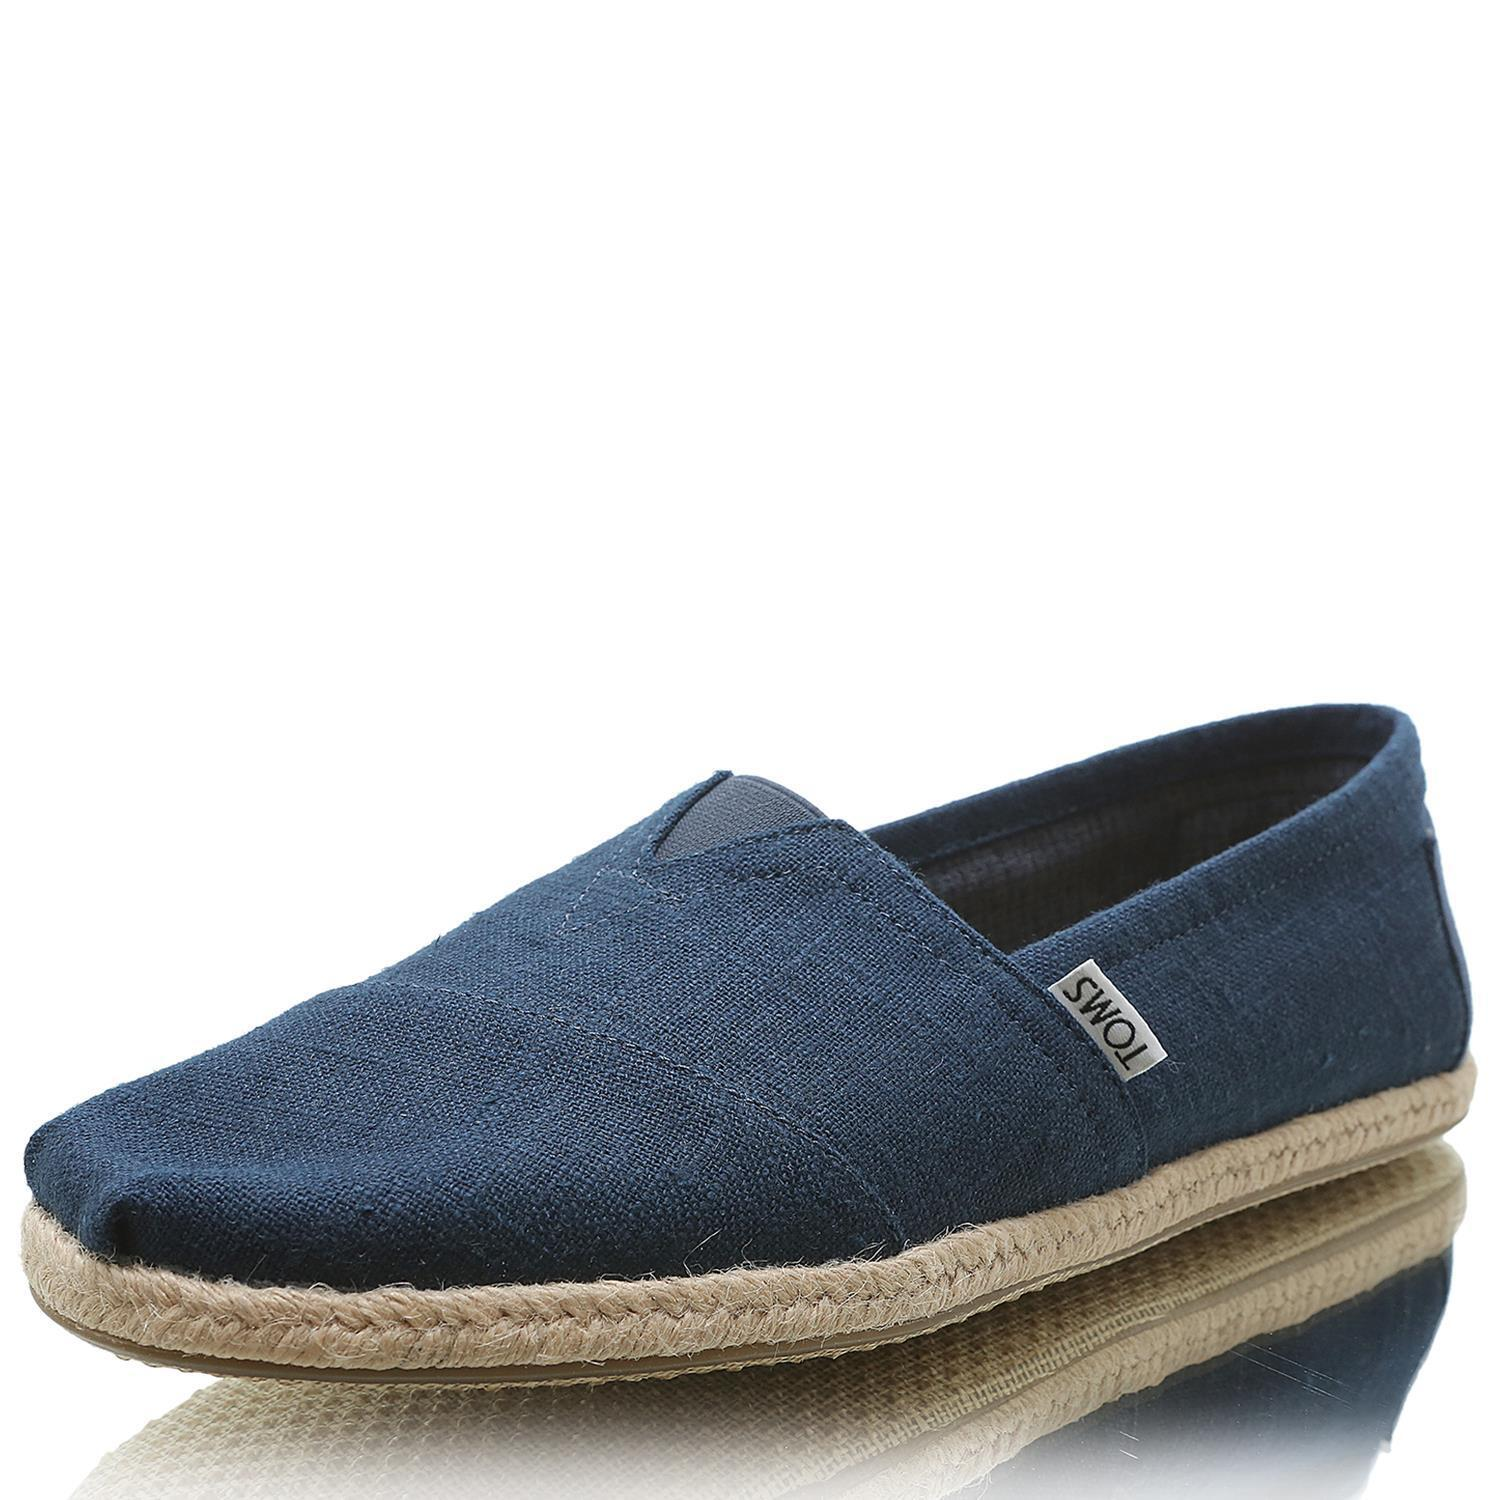 10008553 MN Linen Rope Sole navy